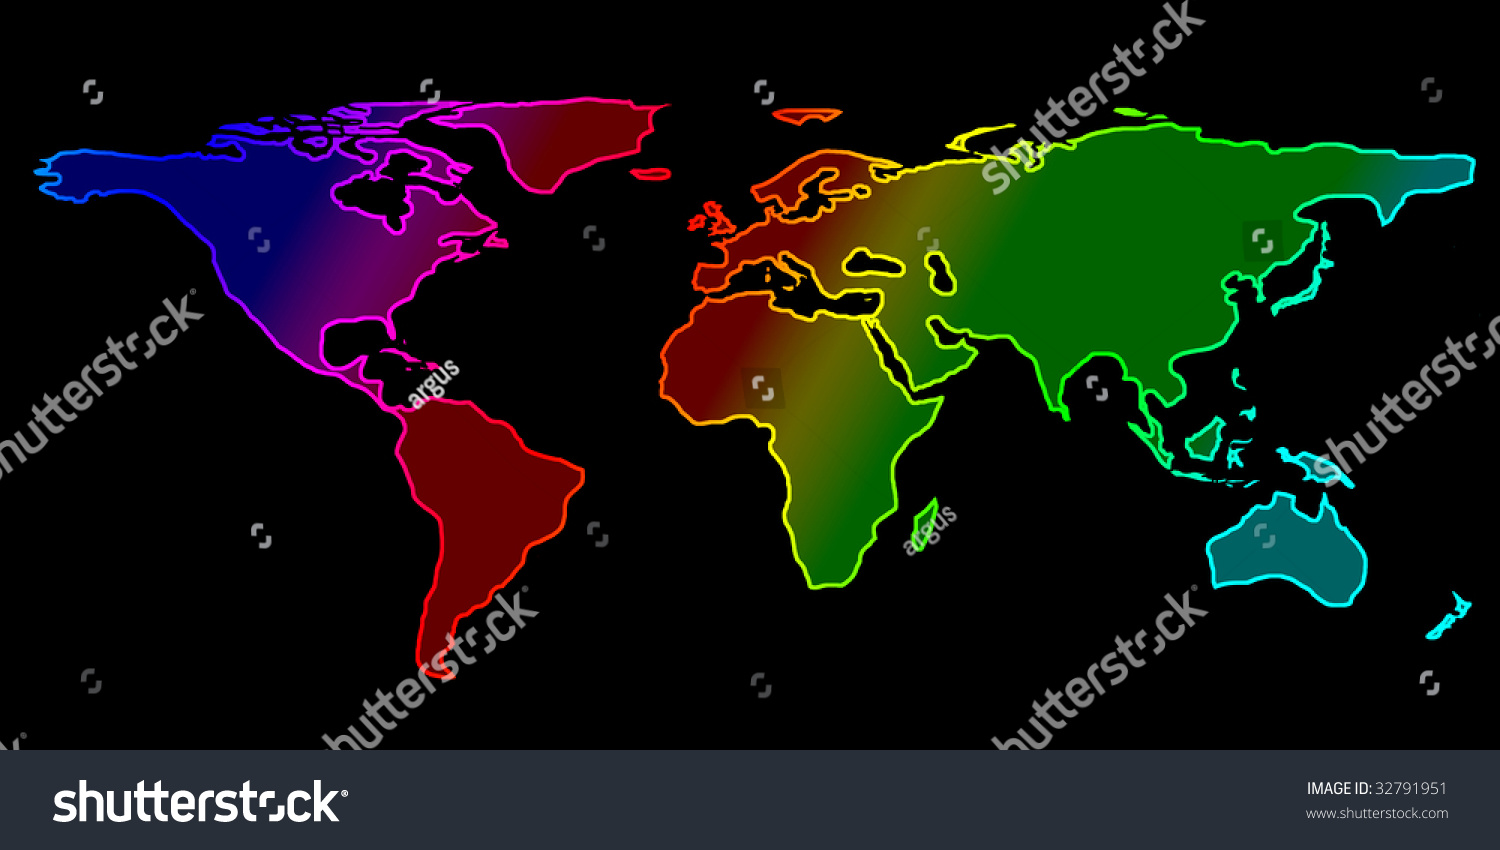 Colorful world map on black background stock illustration 32791951 colorful world map on a black background gumiabroncs Image collections